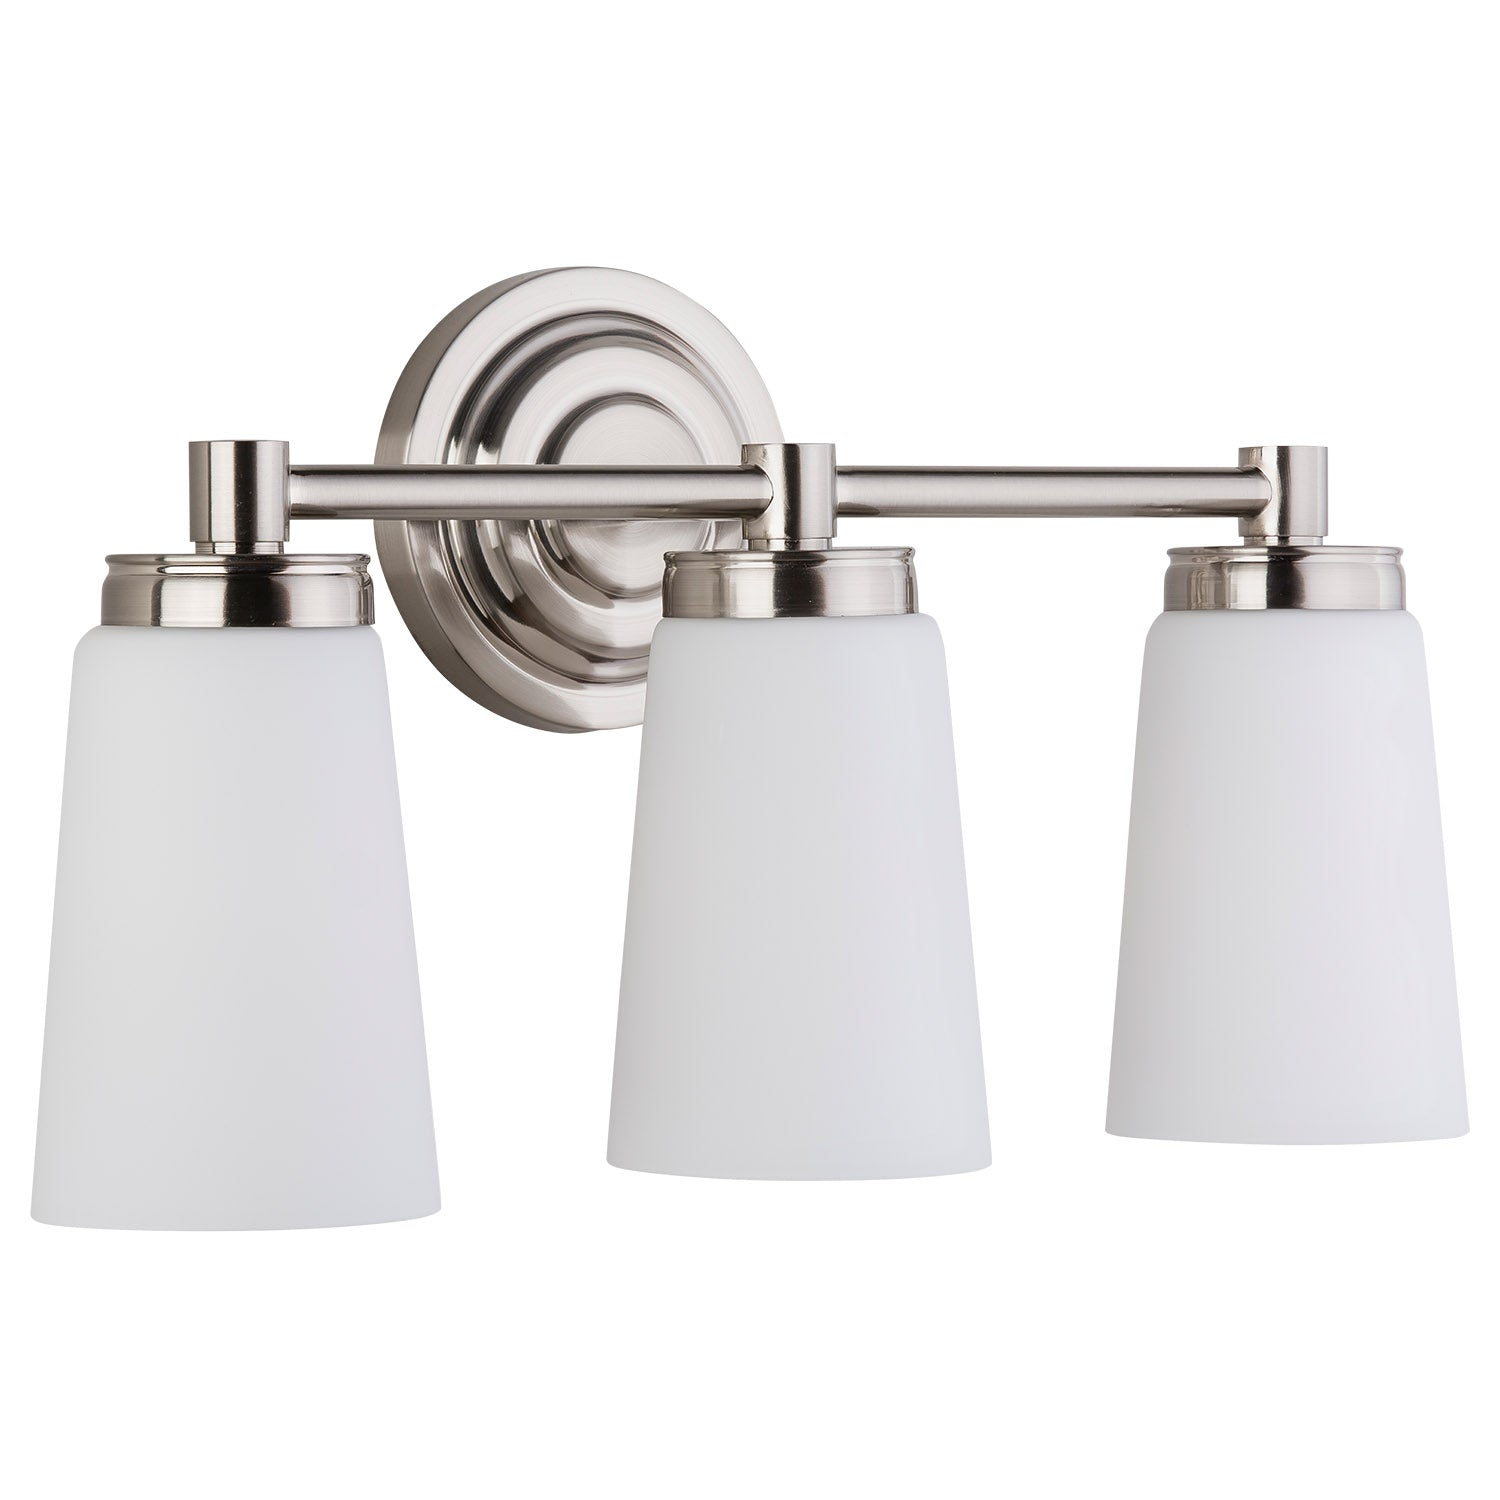 Sheffield 3 Light Bathroom Vanity Light W Frosted Glass Linea Lighting Modern And Affordable Residential Lighting